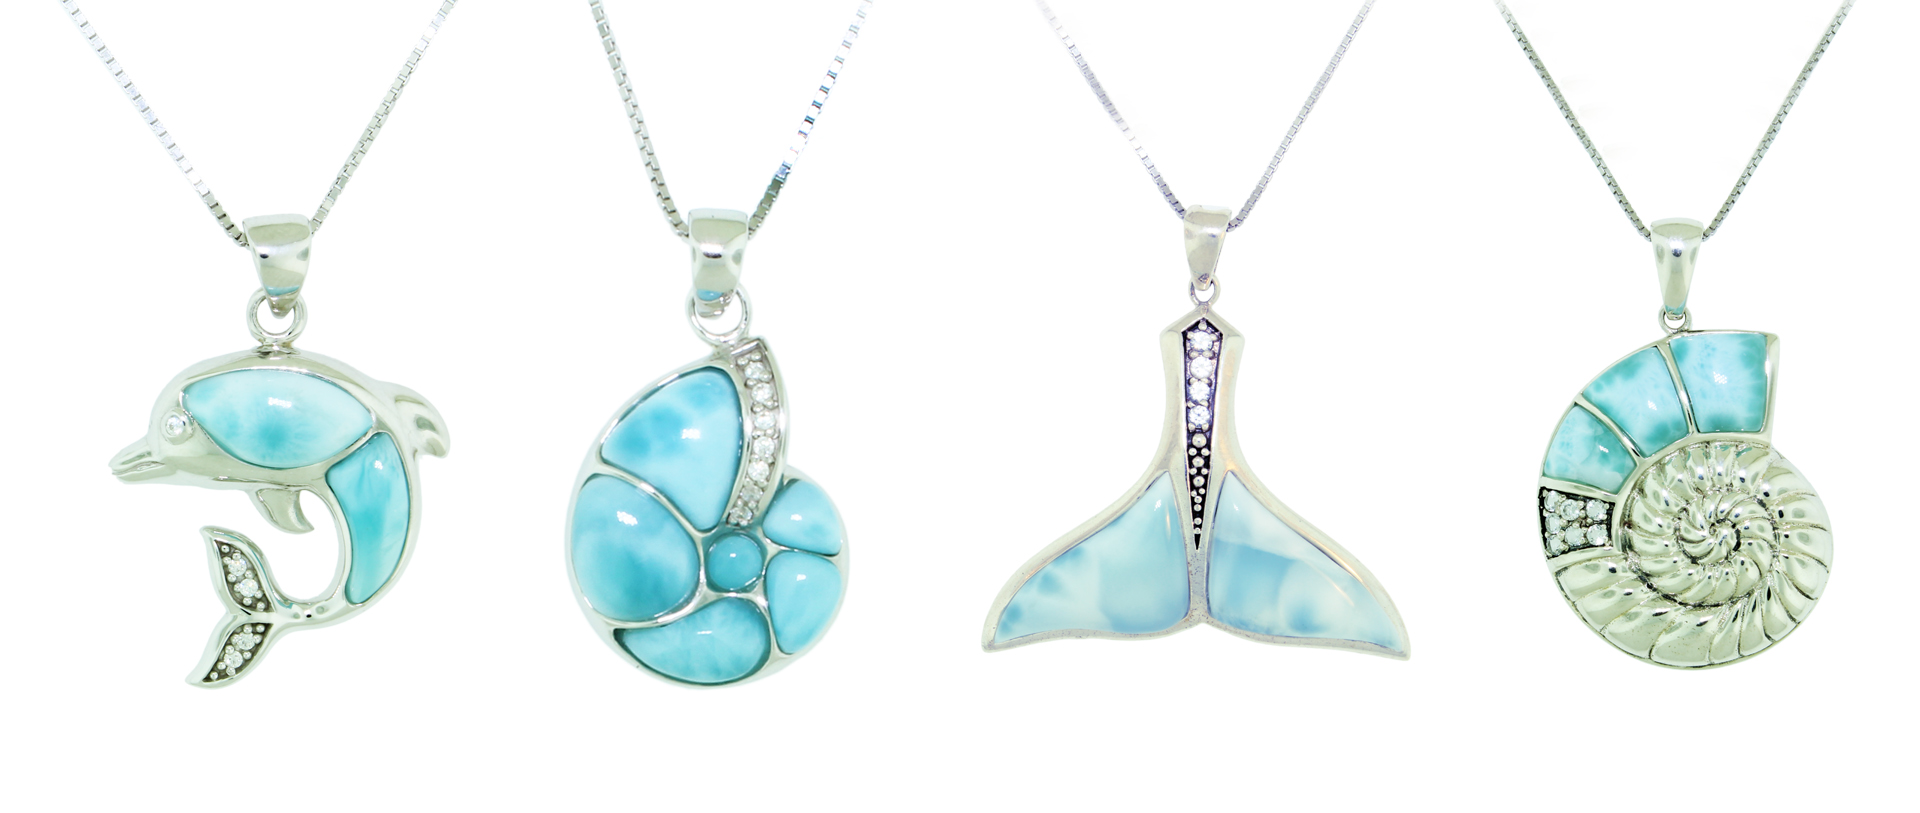 category-larimar-jewelry-pendants